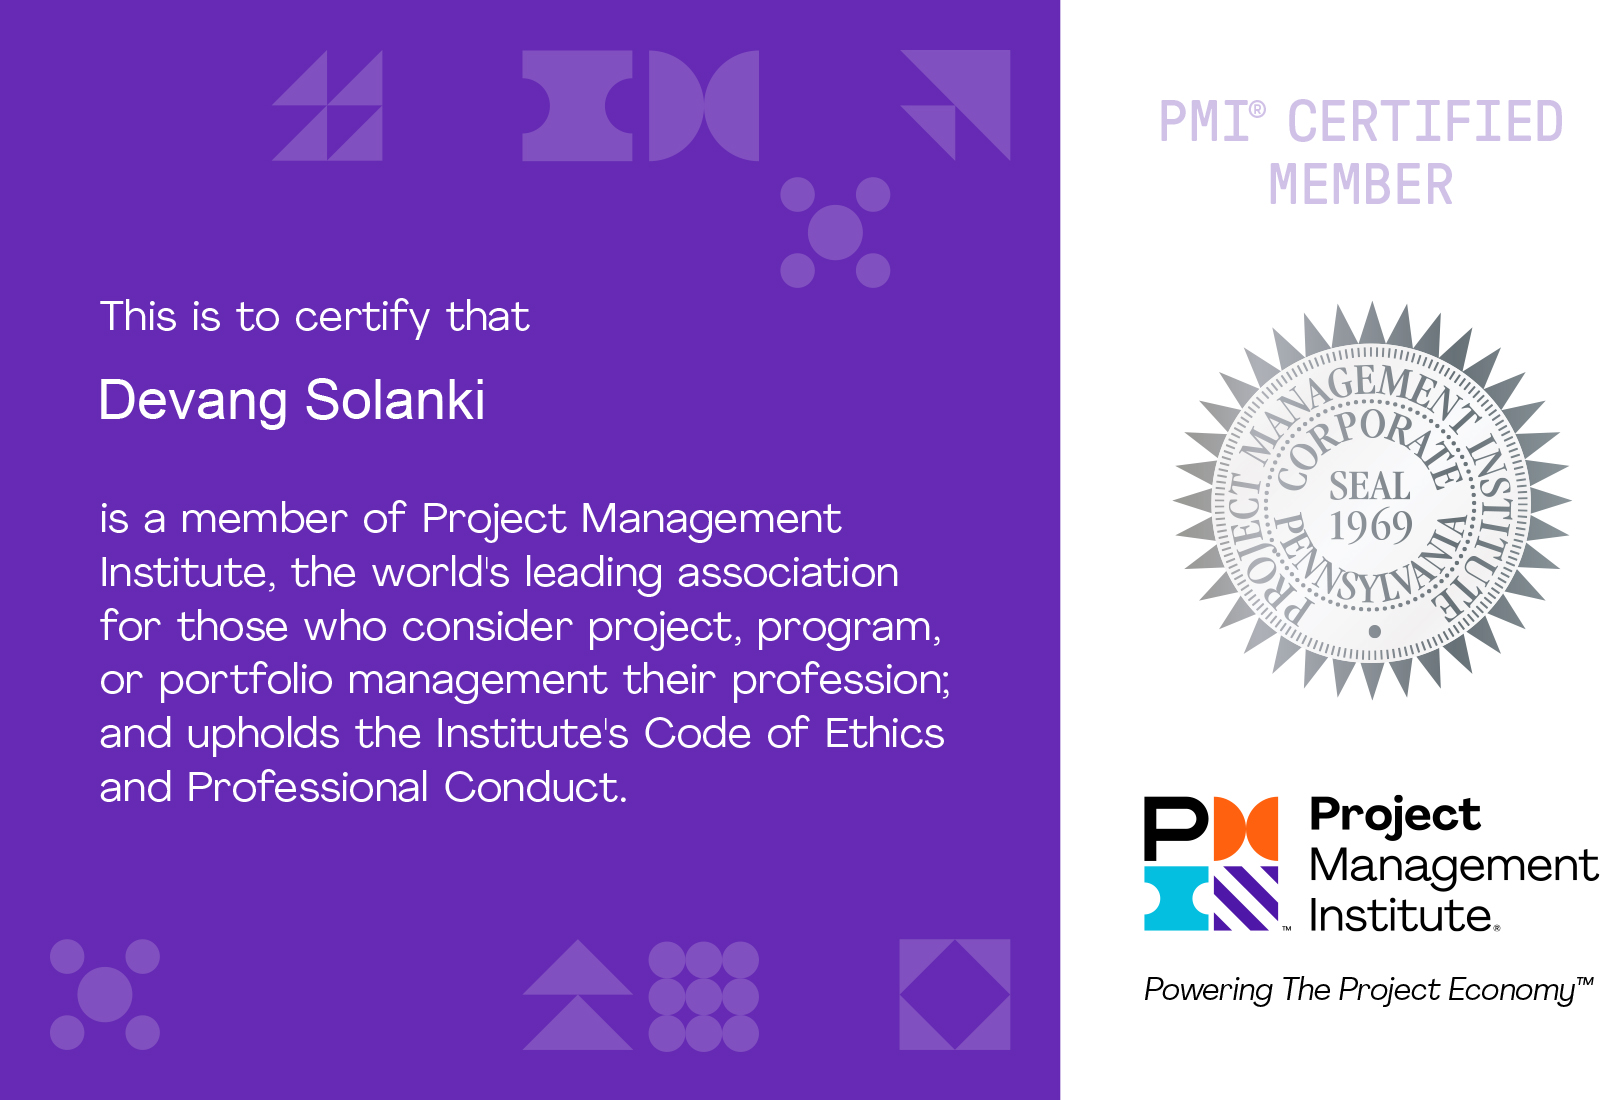 Project Management Institute Membership Certification 2021